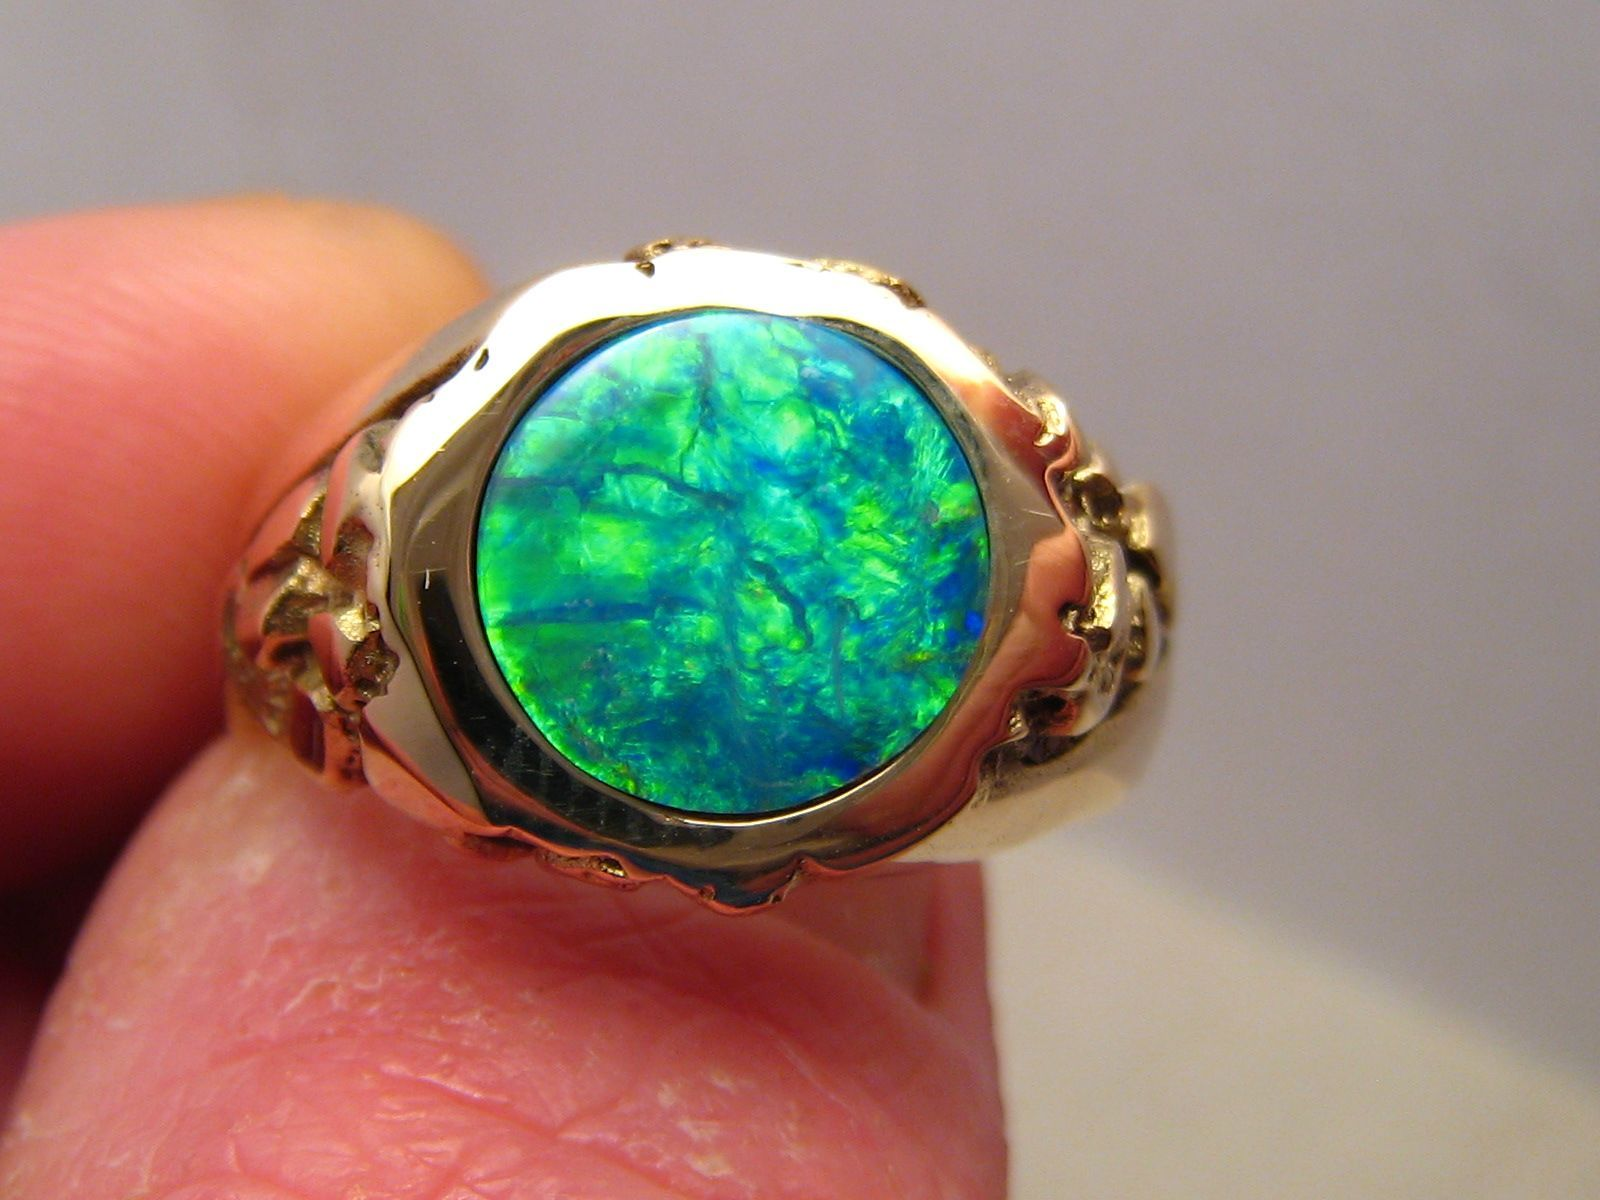 Mens opal ring in a gram k gold textured band with a round